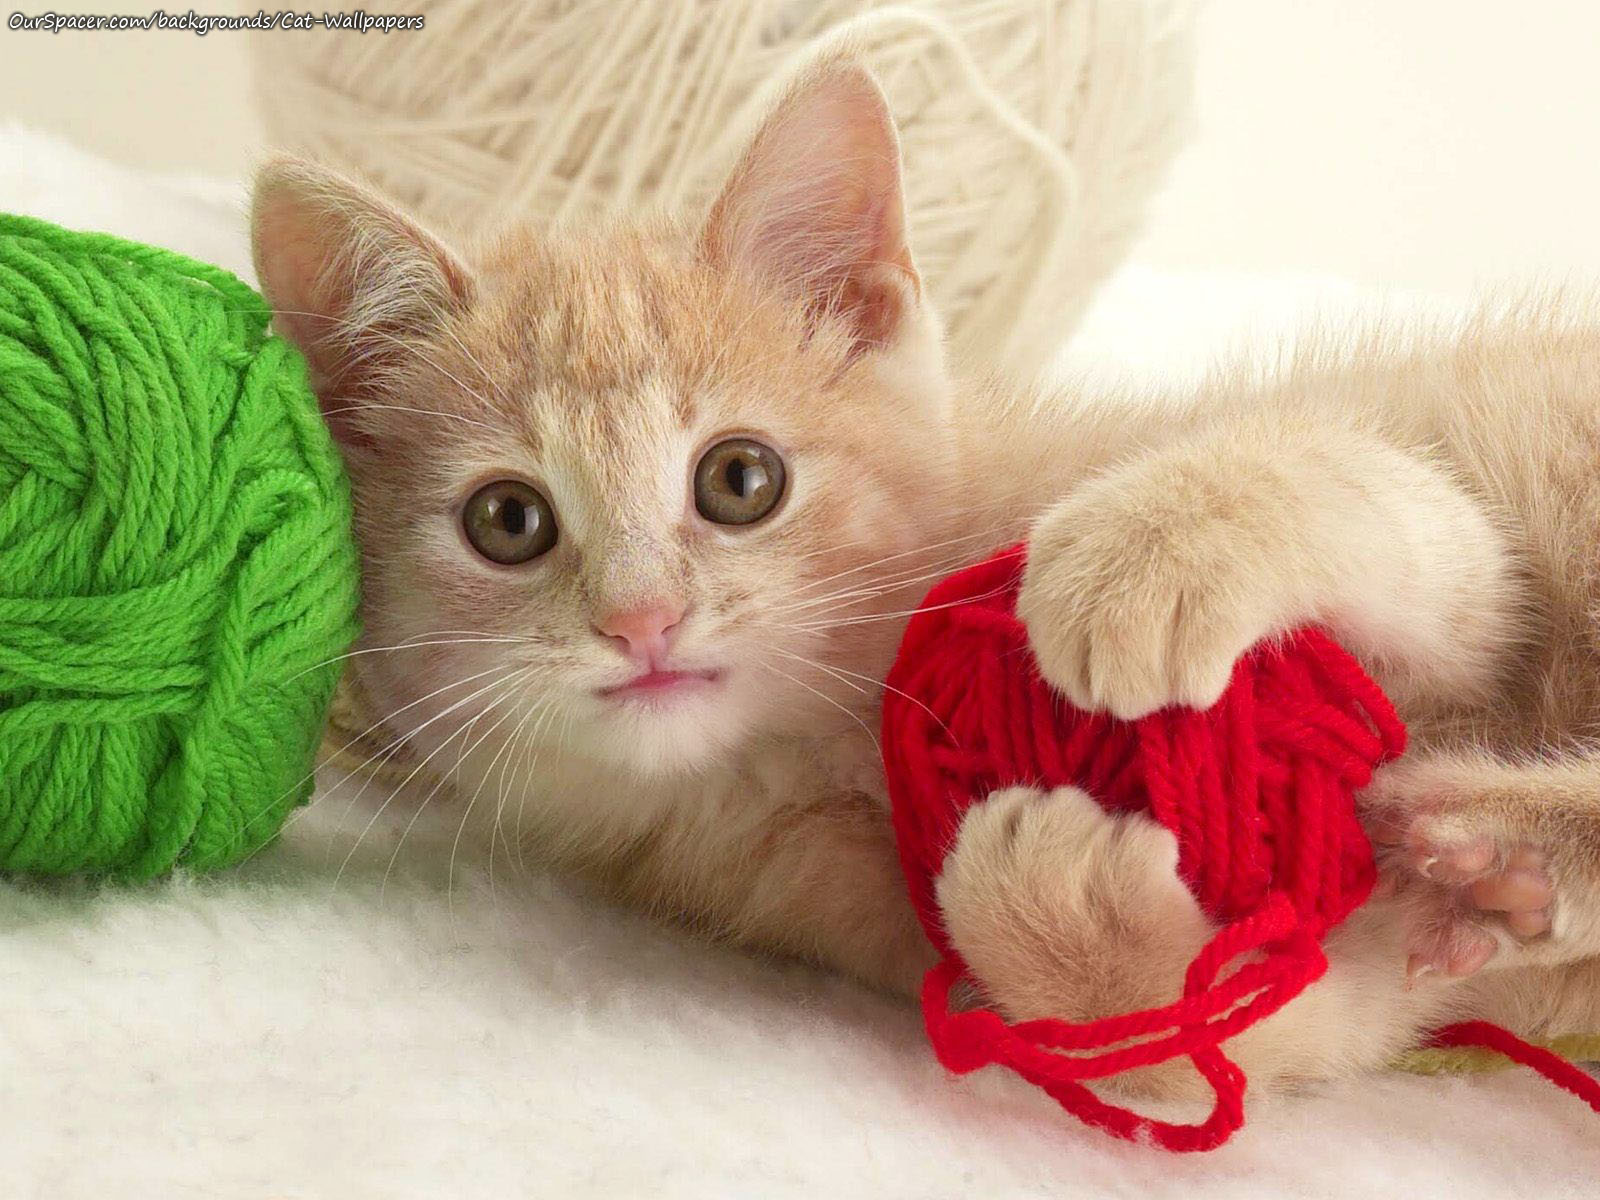 Kitten playing with yarn wallpapers for myspace, twitter, and hi5 backgrounds